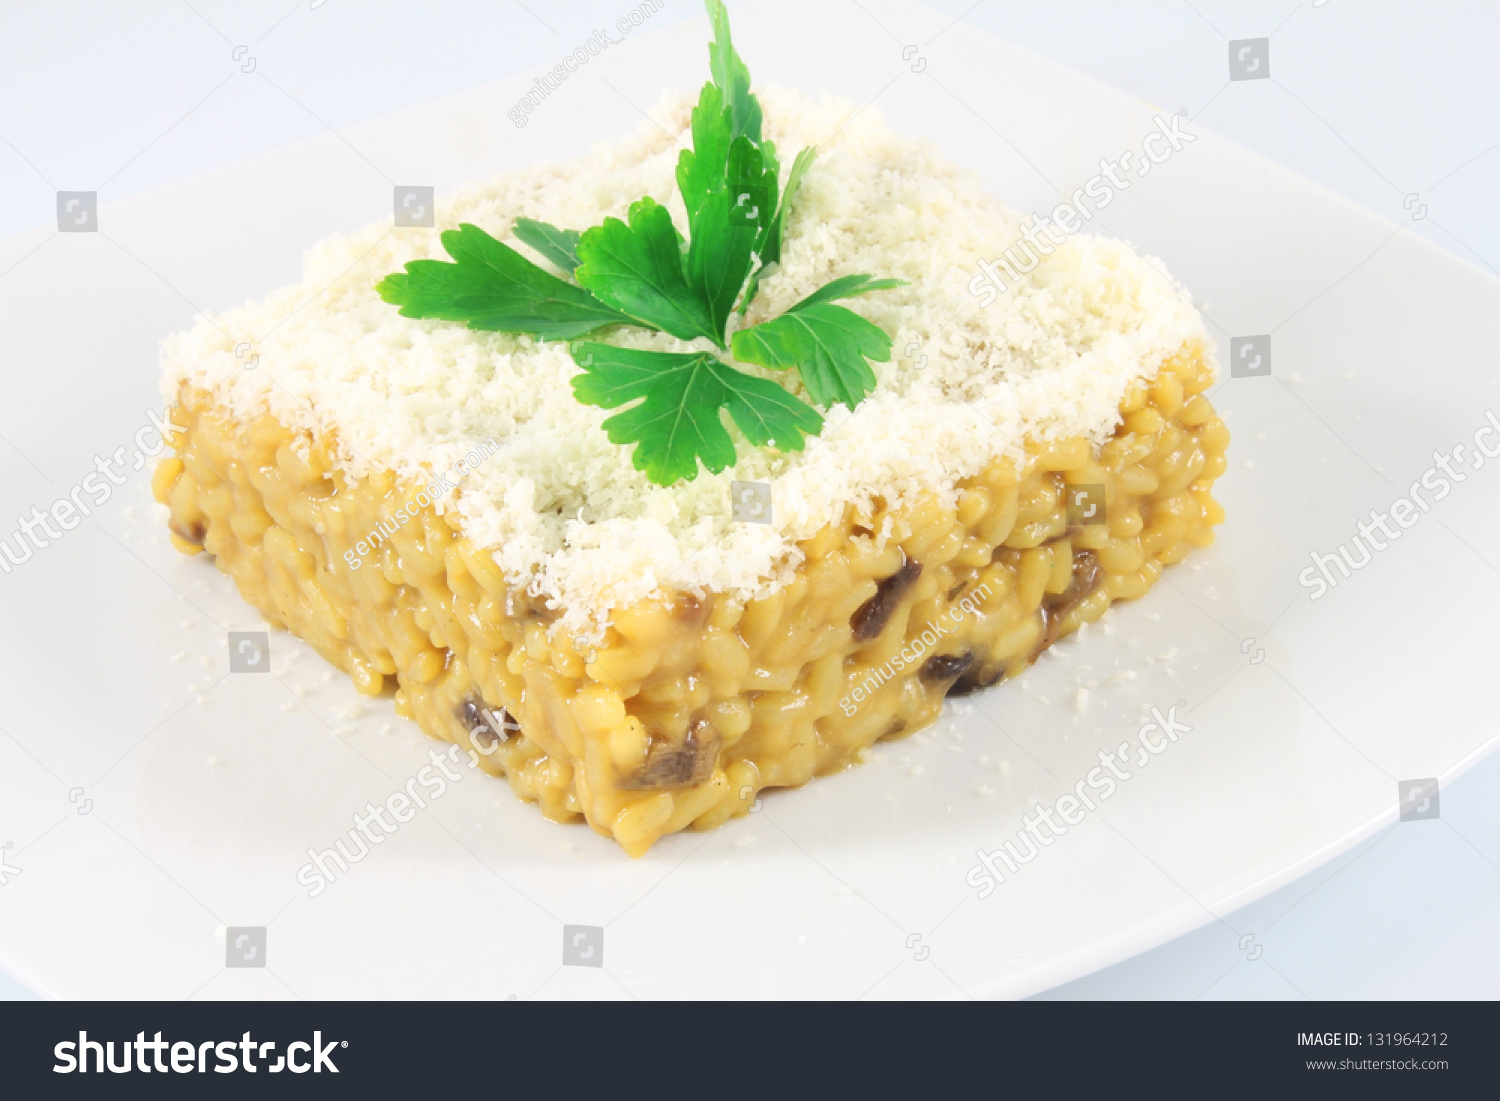 Saffron Risotto With Mushrooms, Cheese And Parsley Stock ...